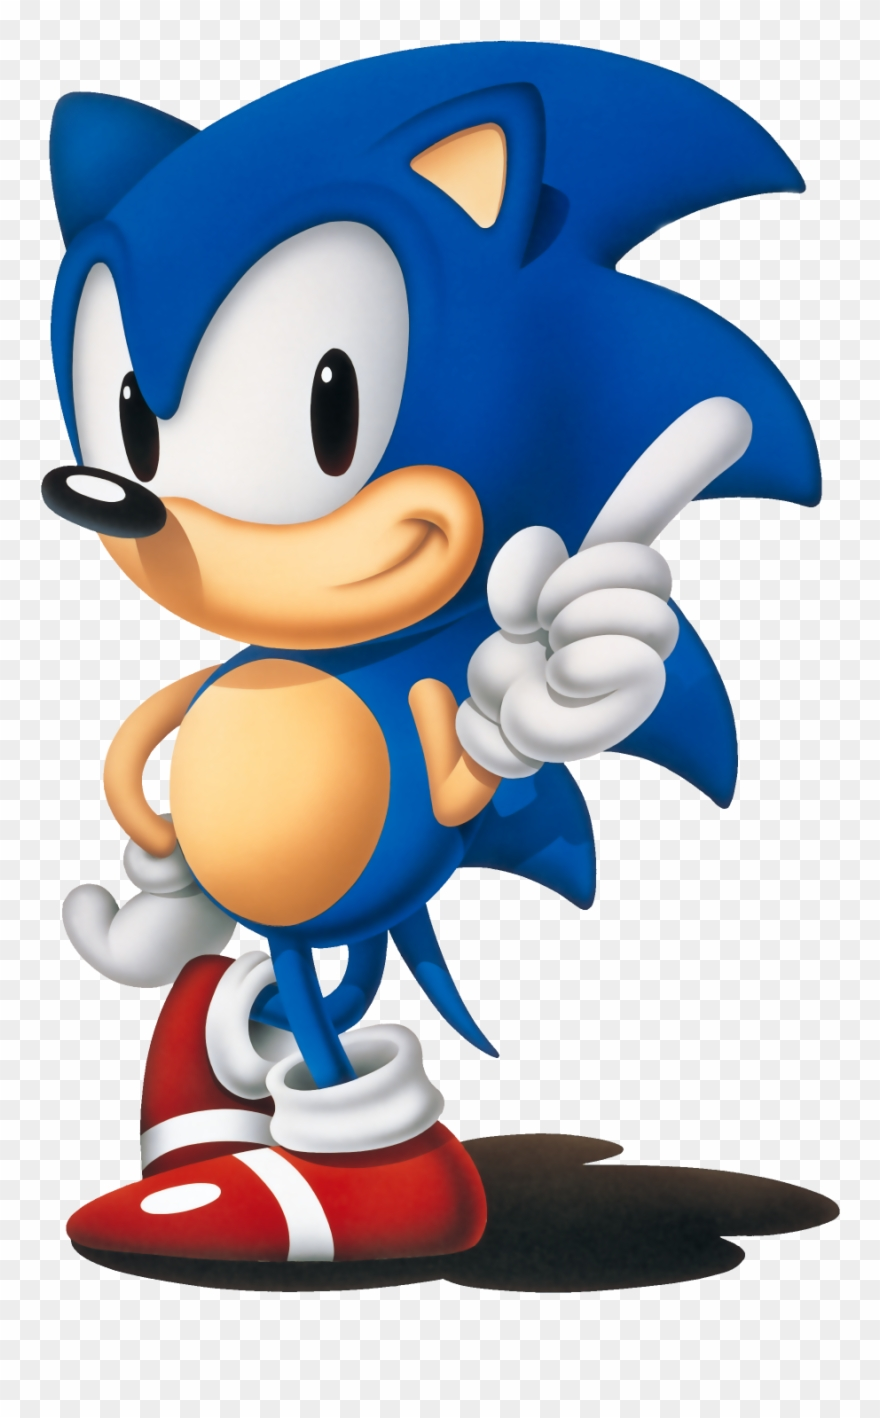 Sonic The Hedgehog 1991 Png Clipart (#314792).